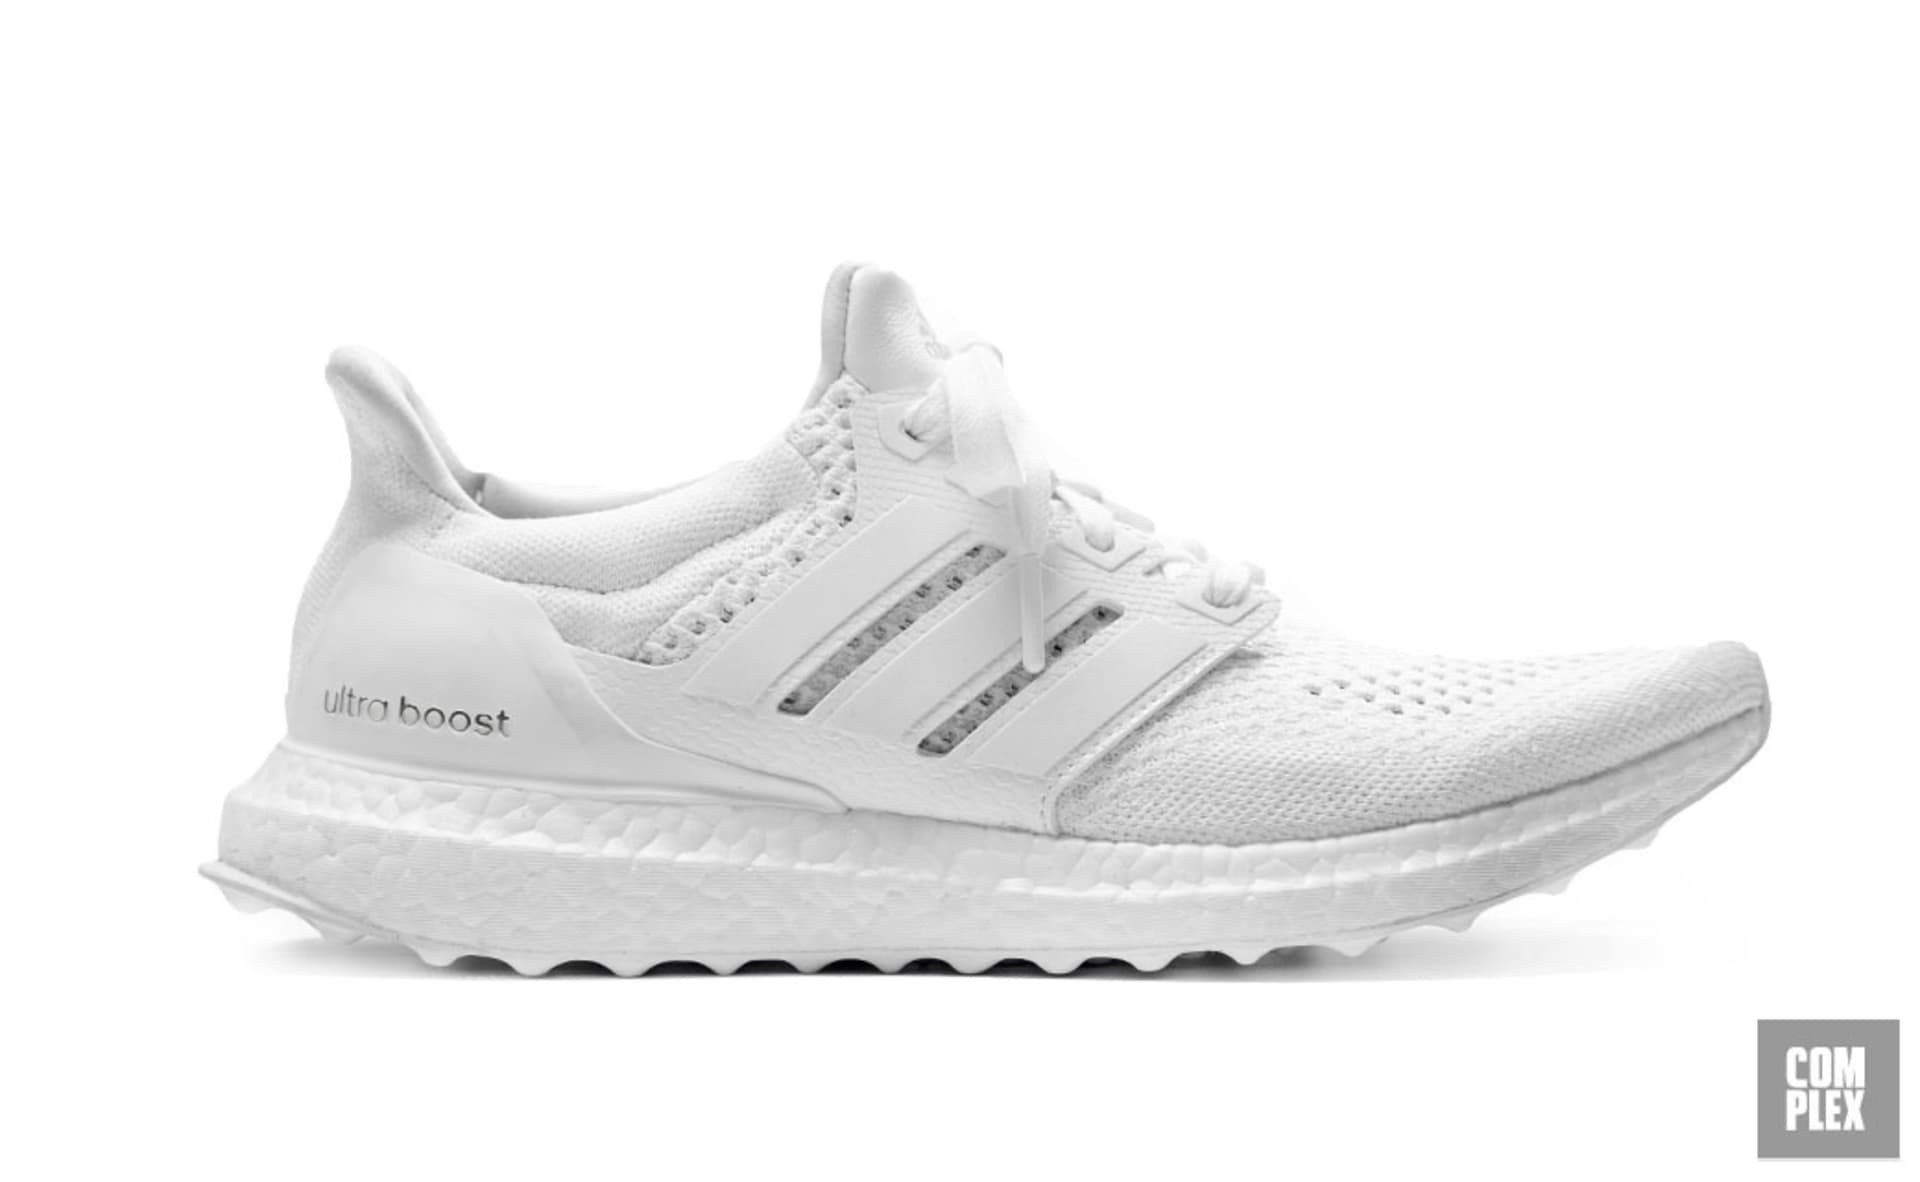 f90301a138d34d adidas  bold claim that Boost would revolutionize the running industry and  pave the way for future performance footwear was met with skepticism  initially